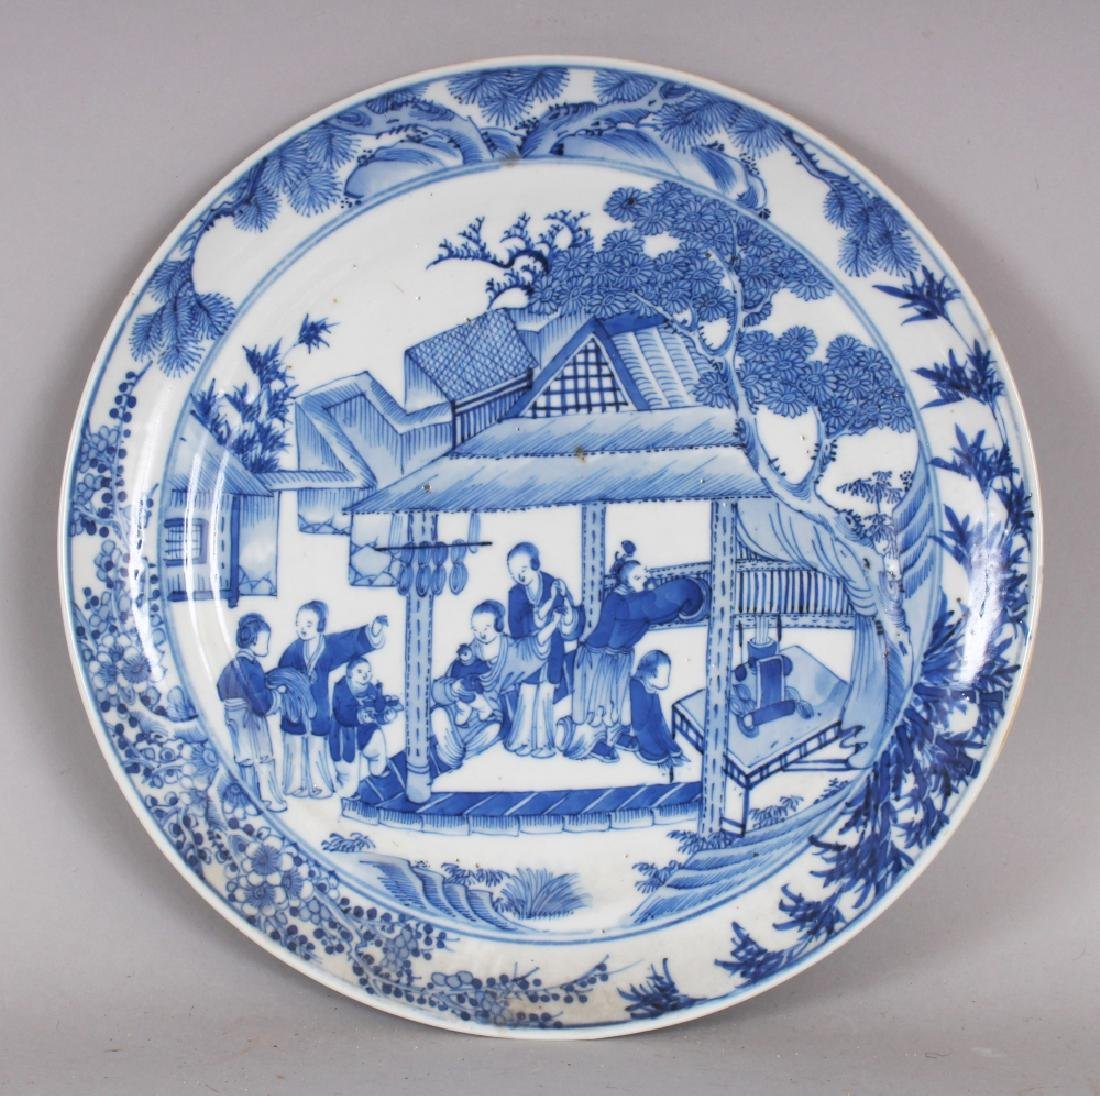 A 19TH CENTURY CHINESE BLUE & WHITE PORCELAIN PLATE,